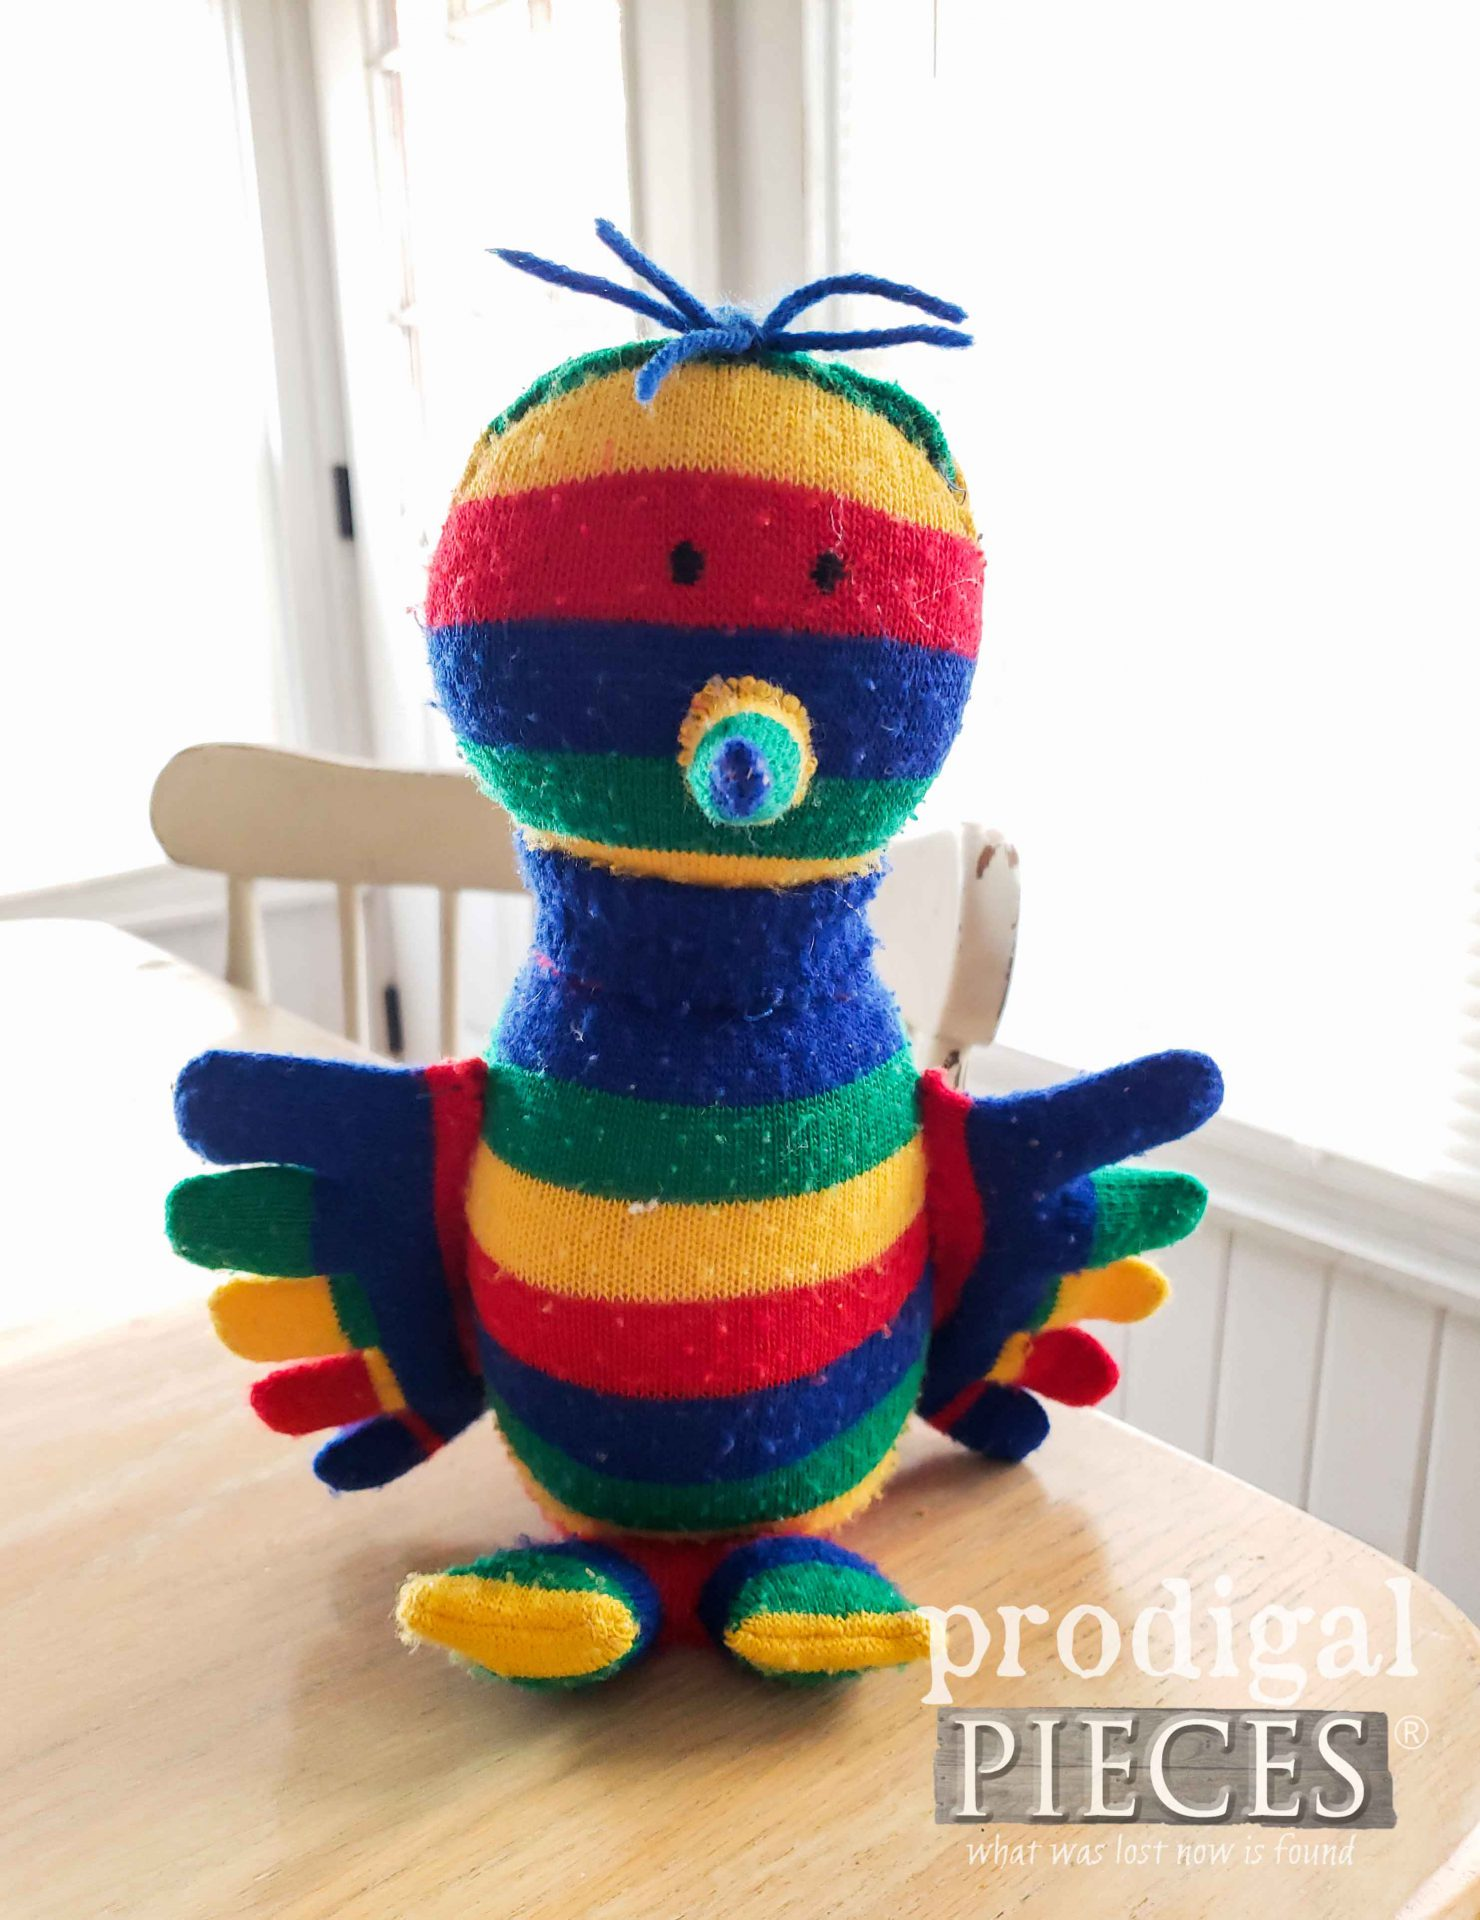 Toe Sock Doll ~ A Whimsical Bird Creation by Prodigal Pieces | prodigalpieces.com #prodigalpieces